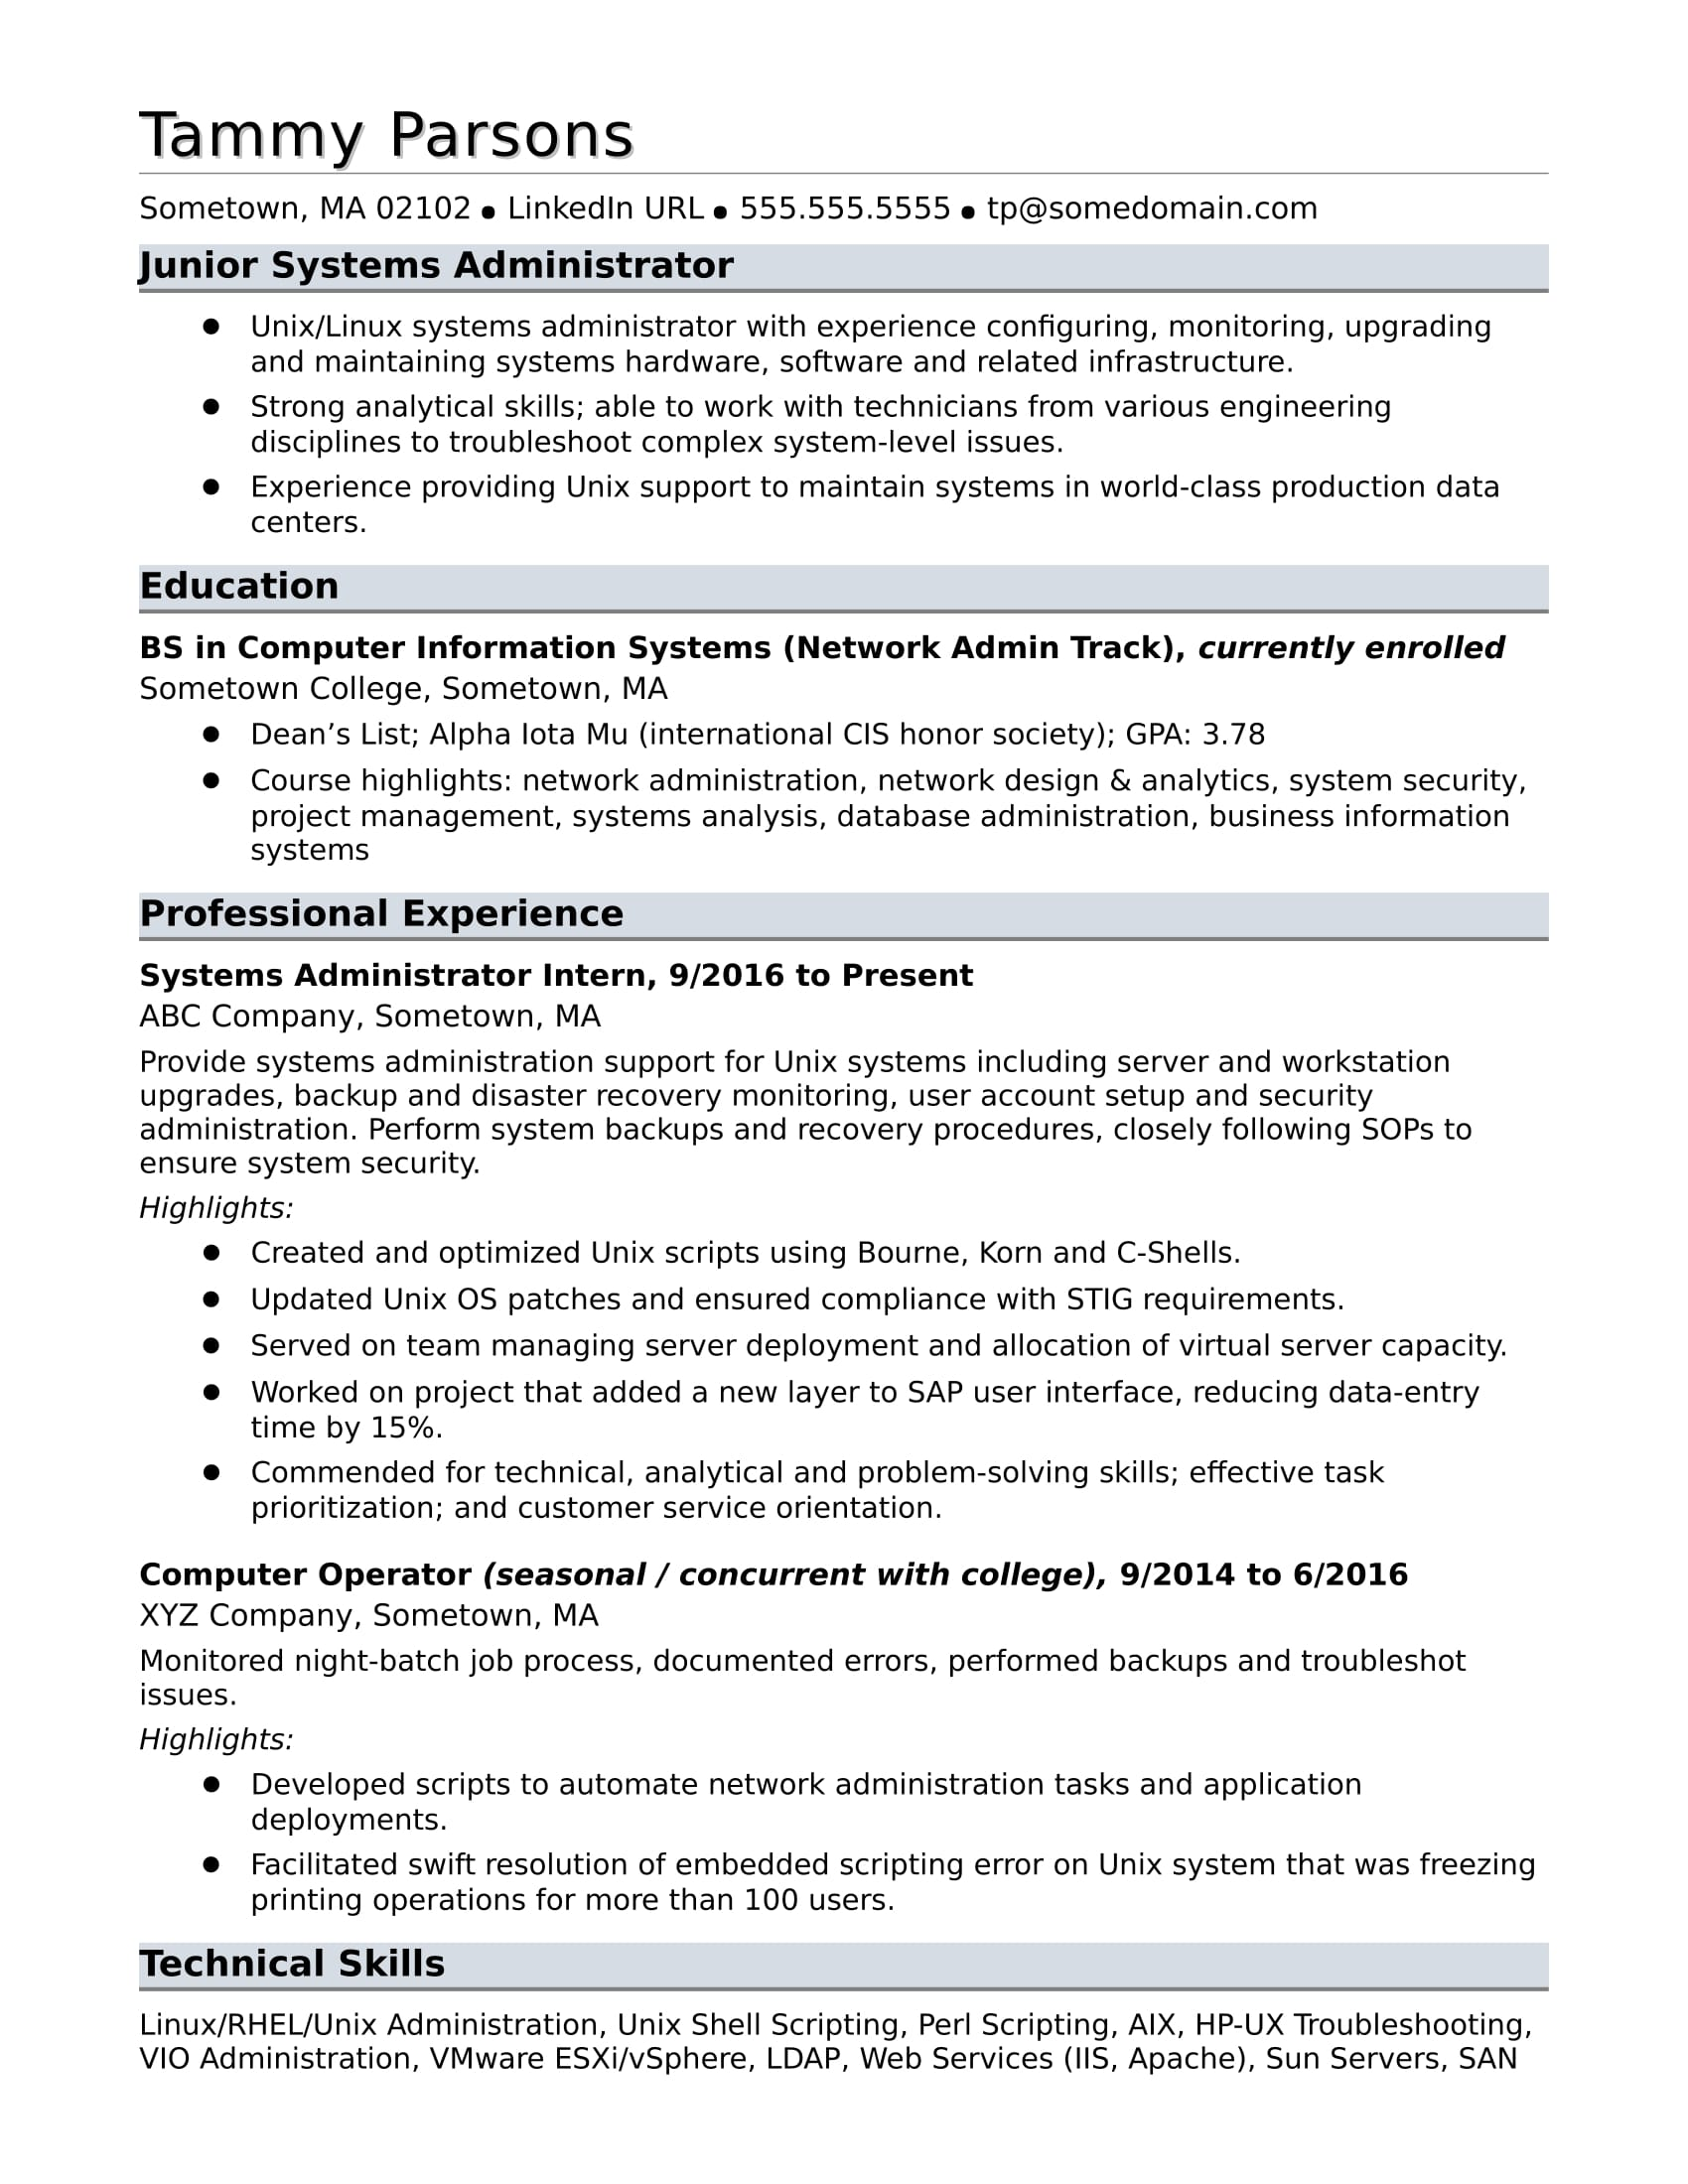 sample resume for an entry level systems administrator monster sap security german format Resume Sap Security Administrator Resume